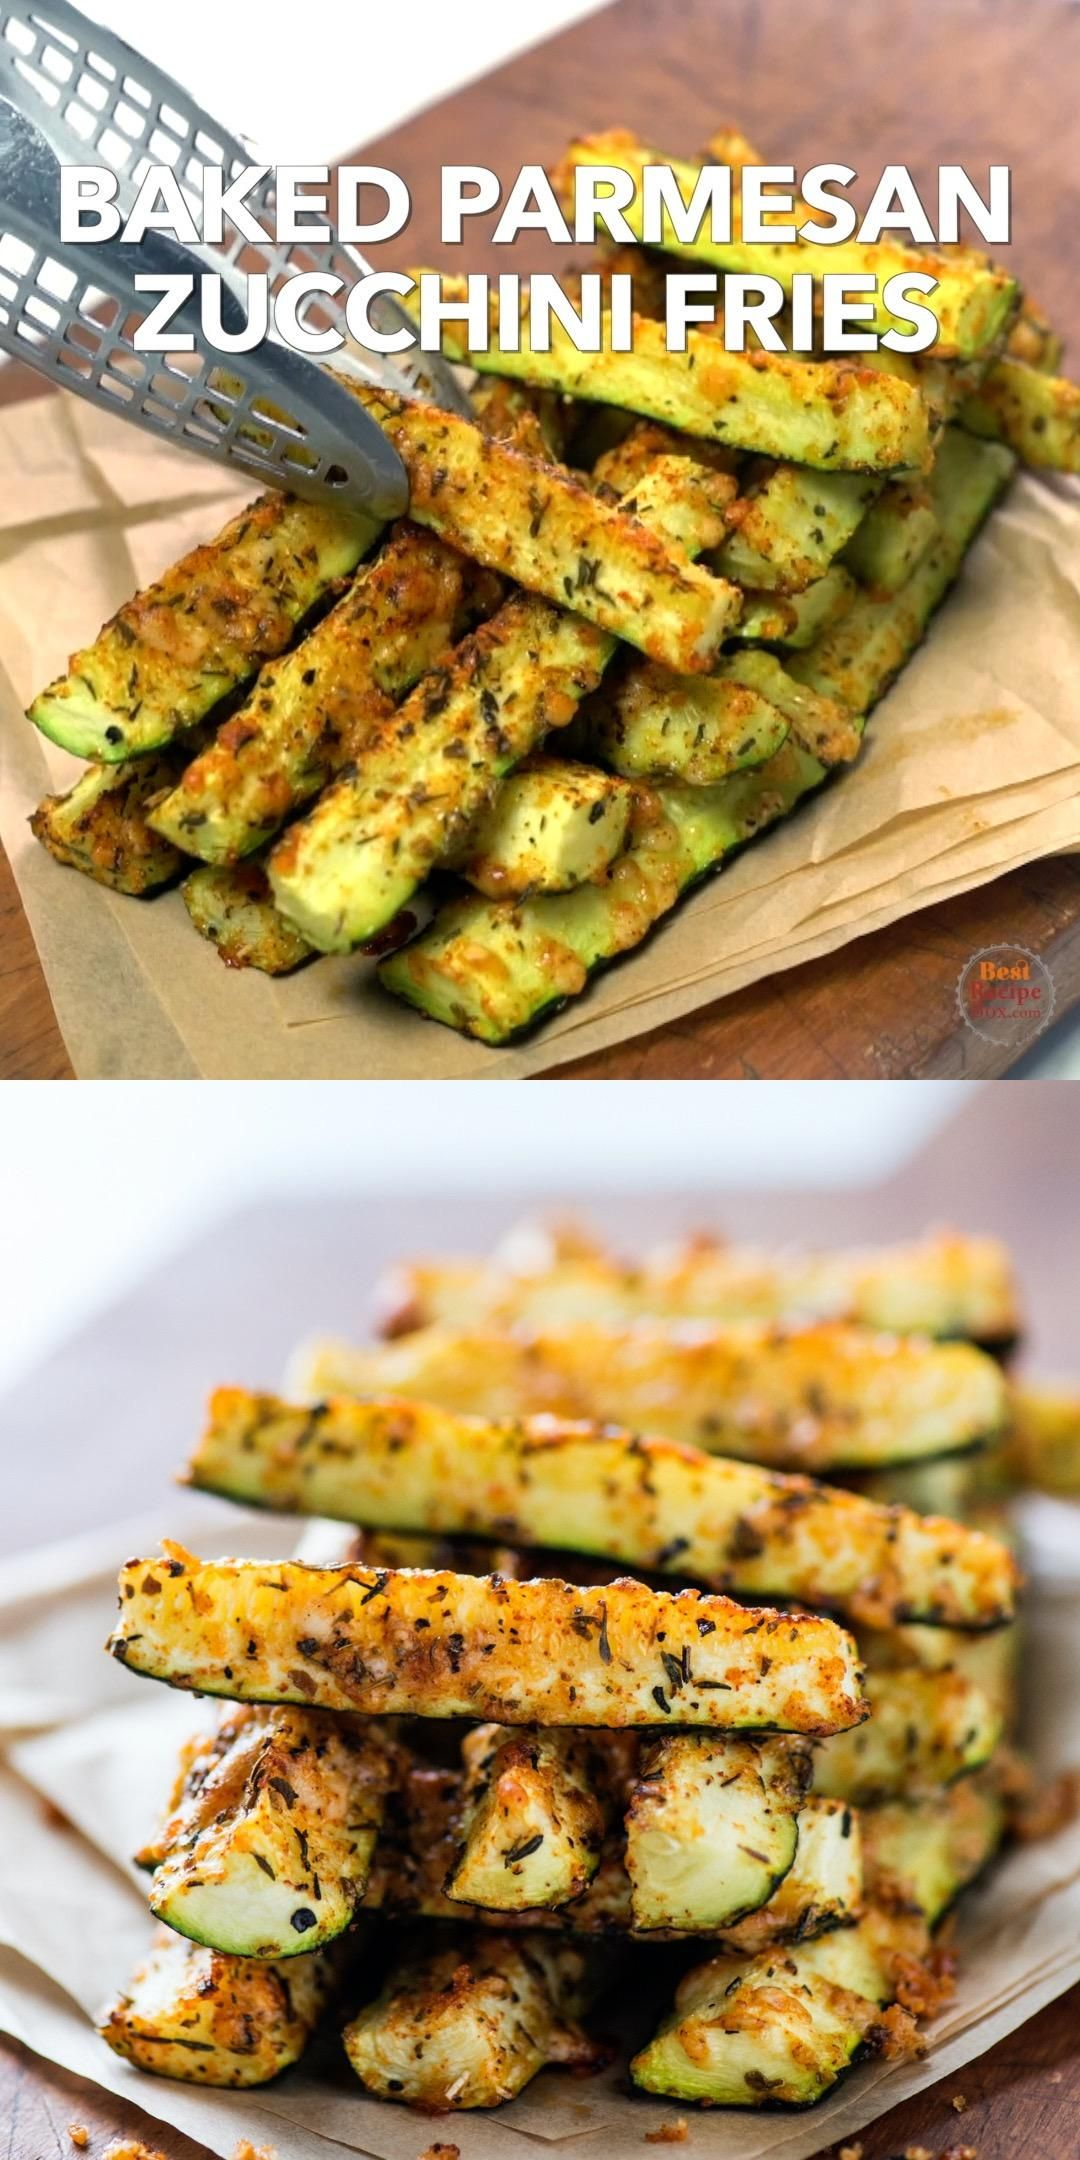 Photo of Healthy Baked Zucchini Fries with Parmesan Cheese